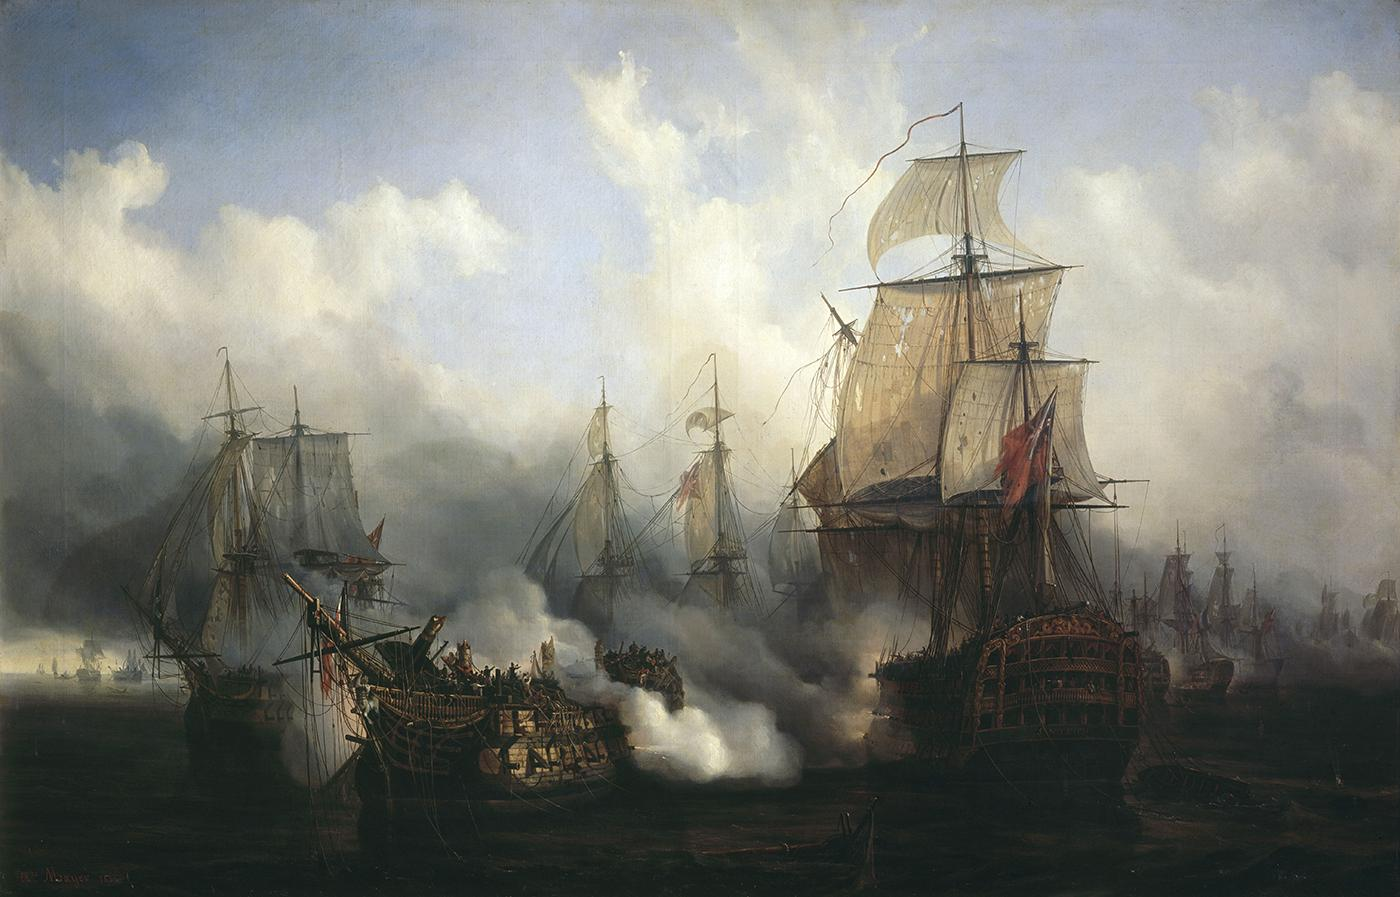 Trafalgar by Auguste Mayer, 1836